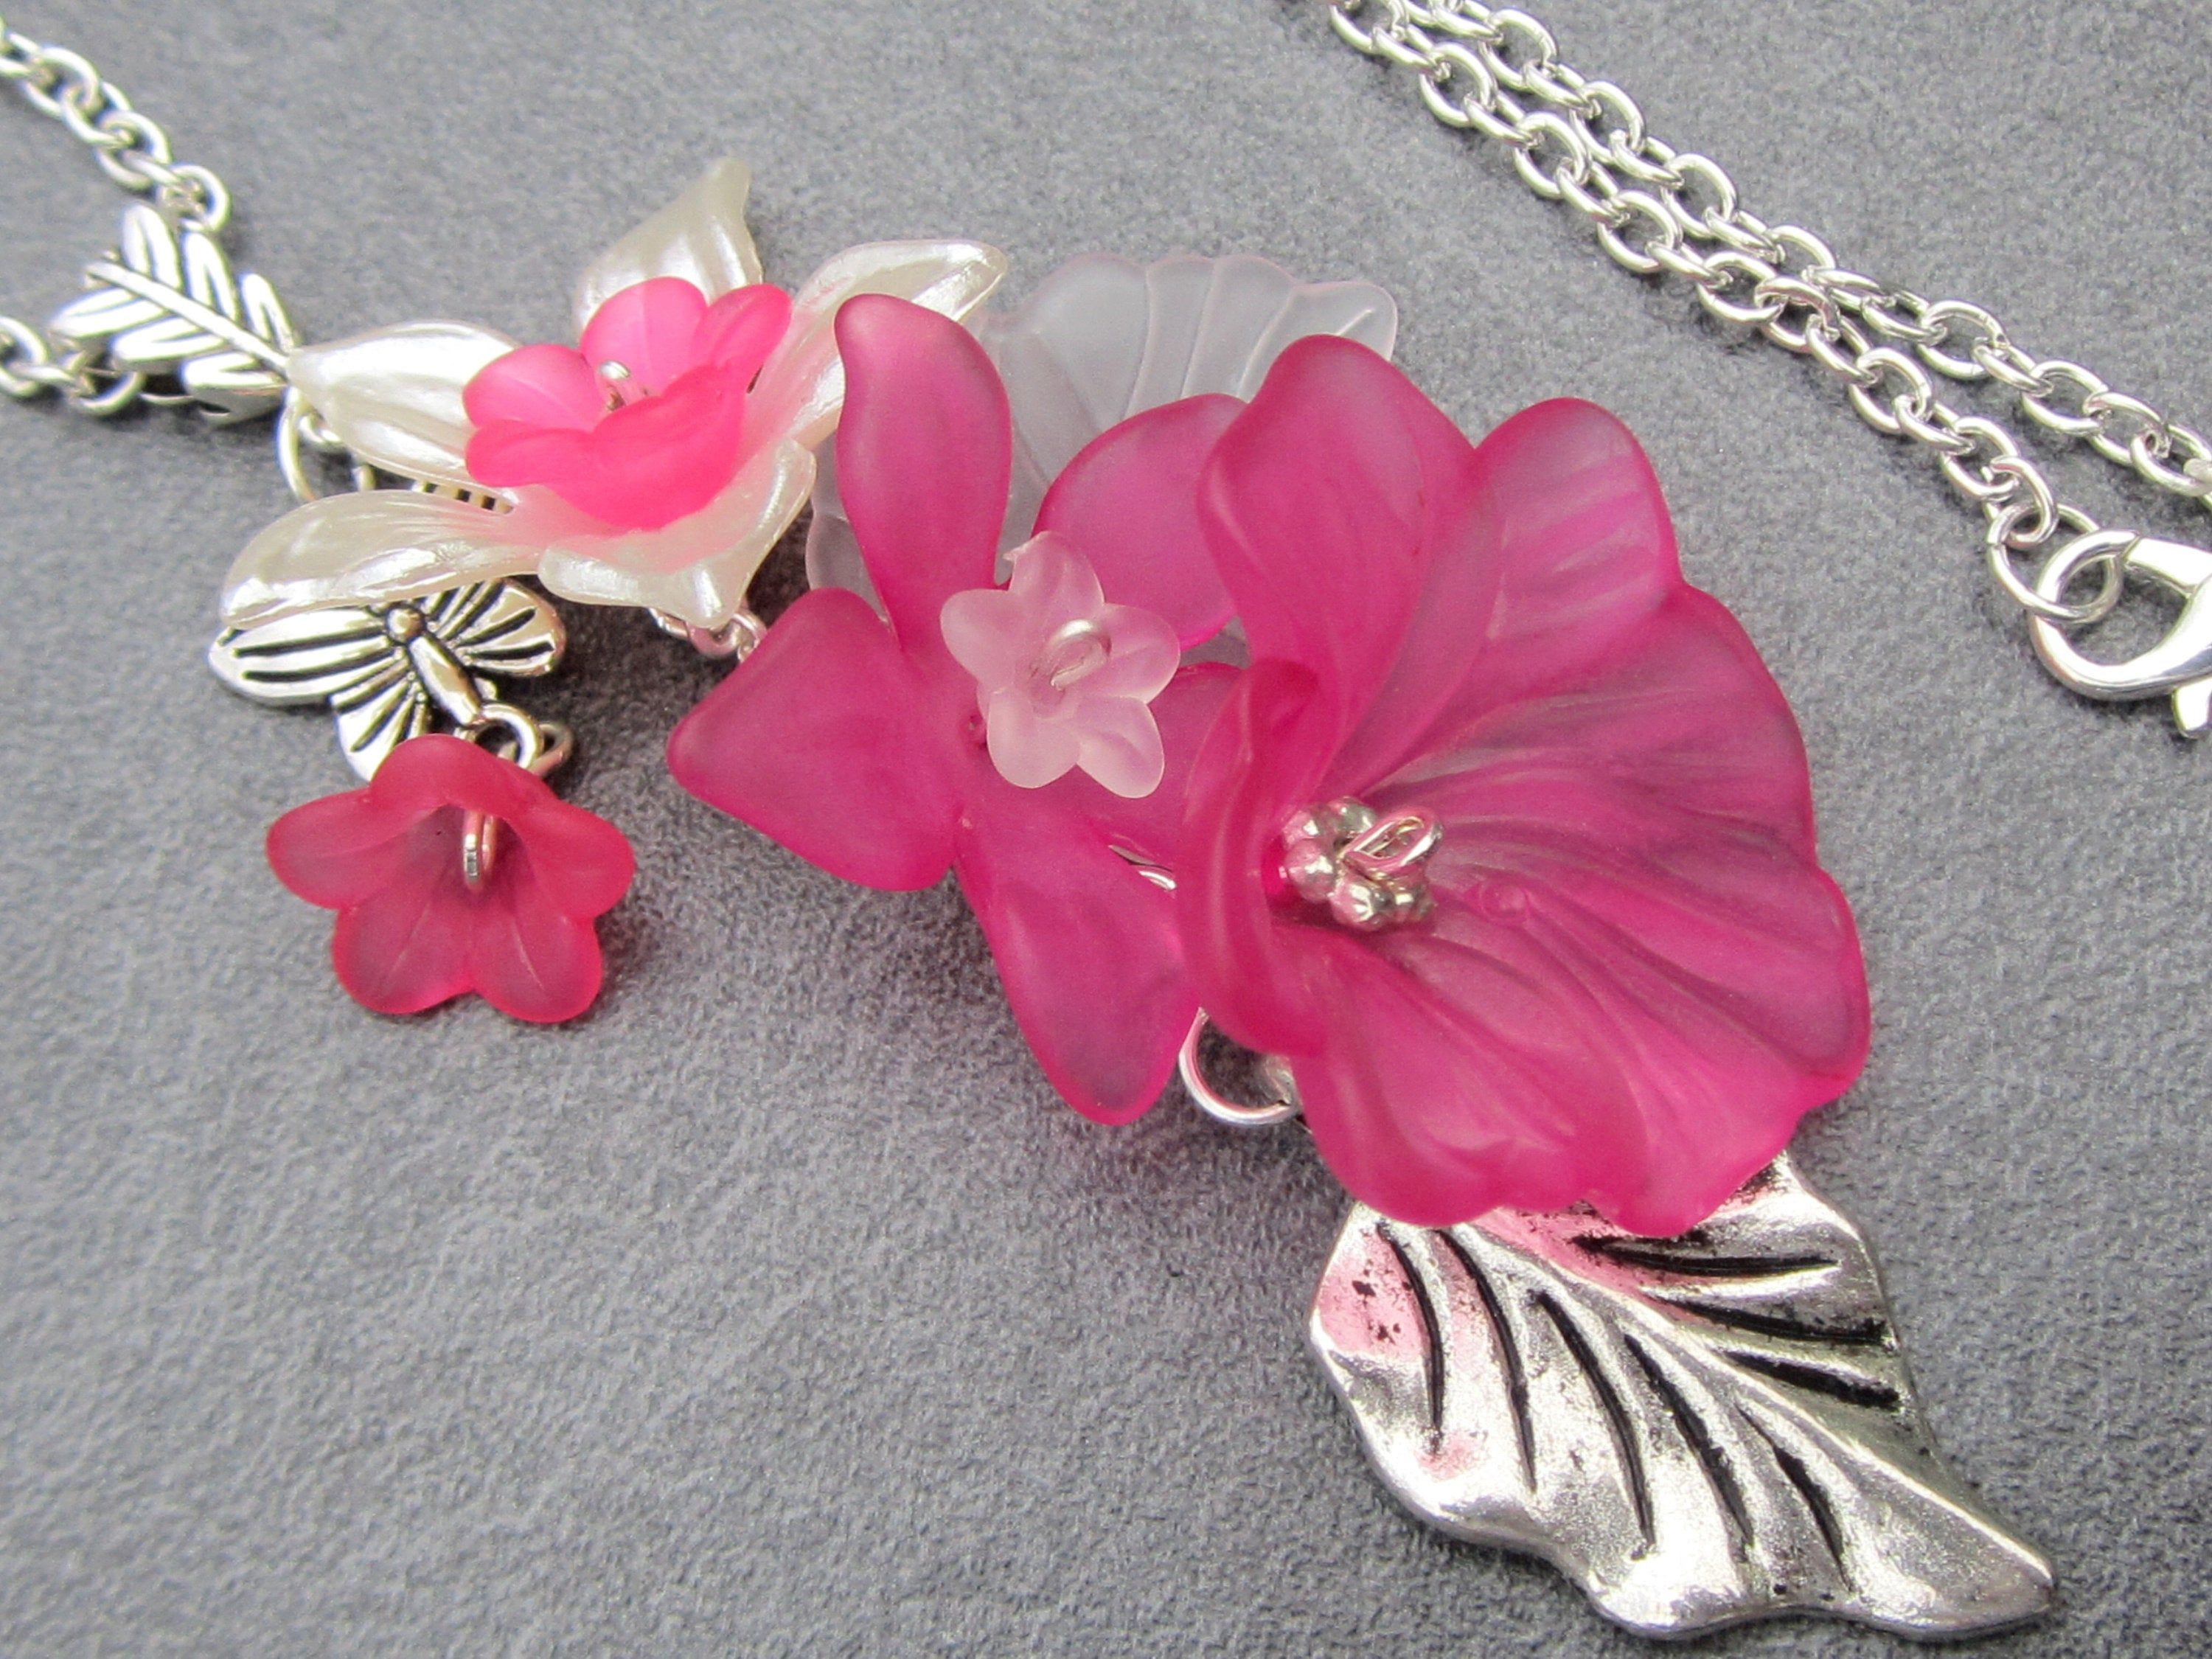 Y-chain WHITE FINGERHUT with leaves 56 cm long all around plus 8 cm pendant necklace with Lucite flowers and leaves silver-colored-white-green